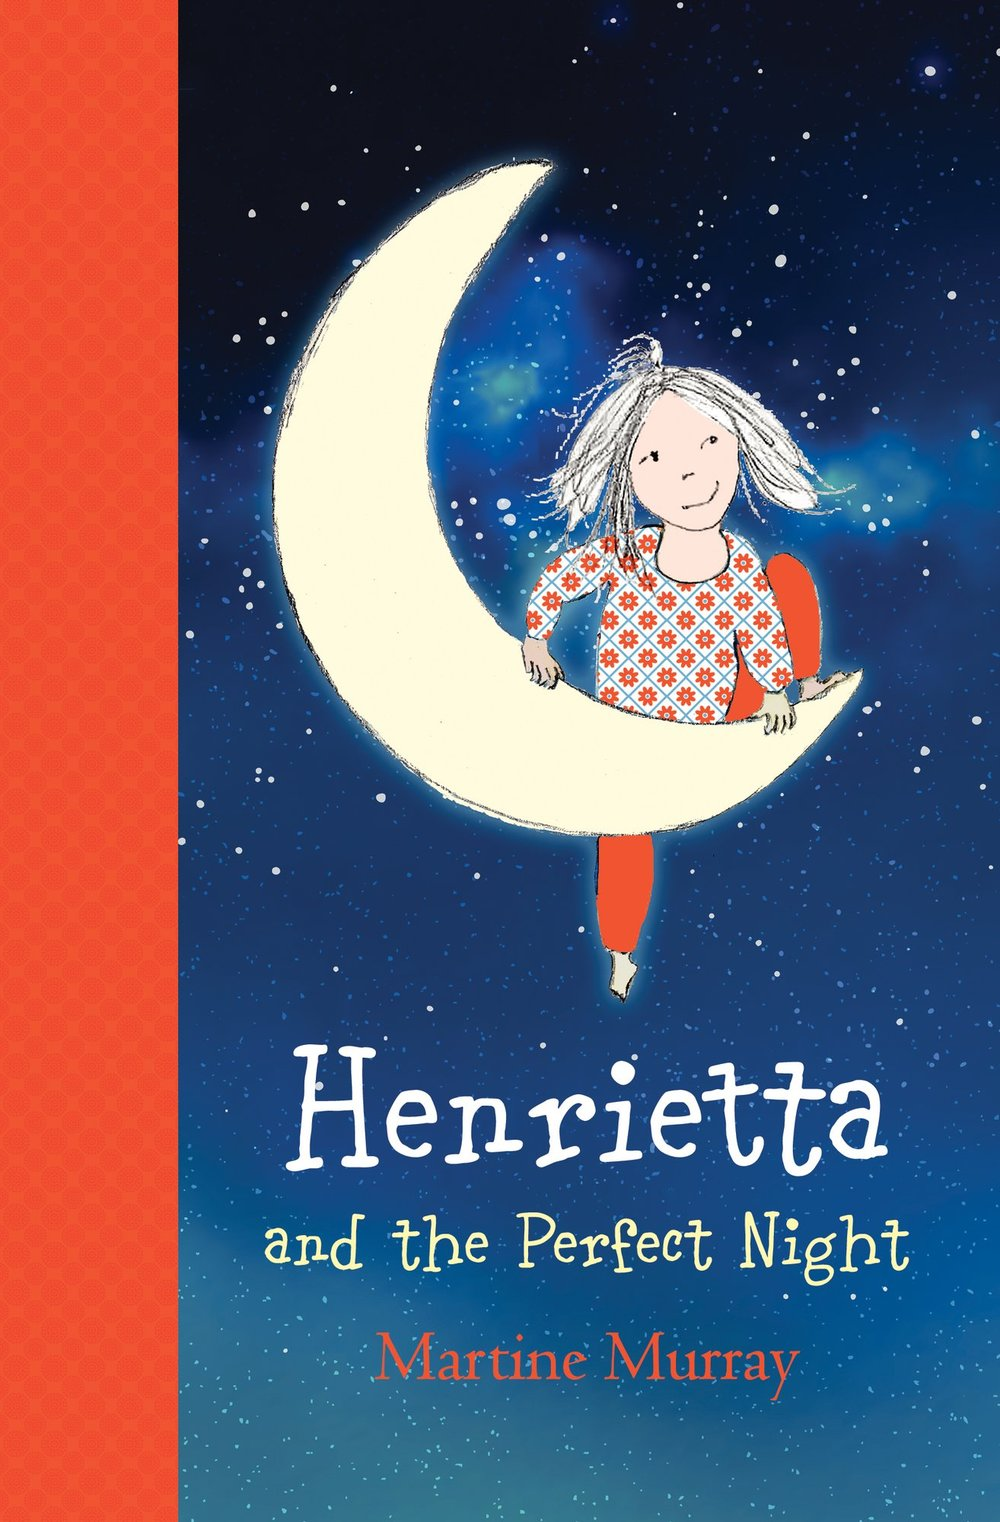 henrietta and the perfect night.jpg